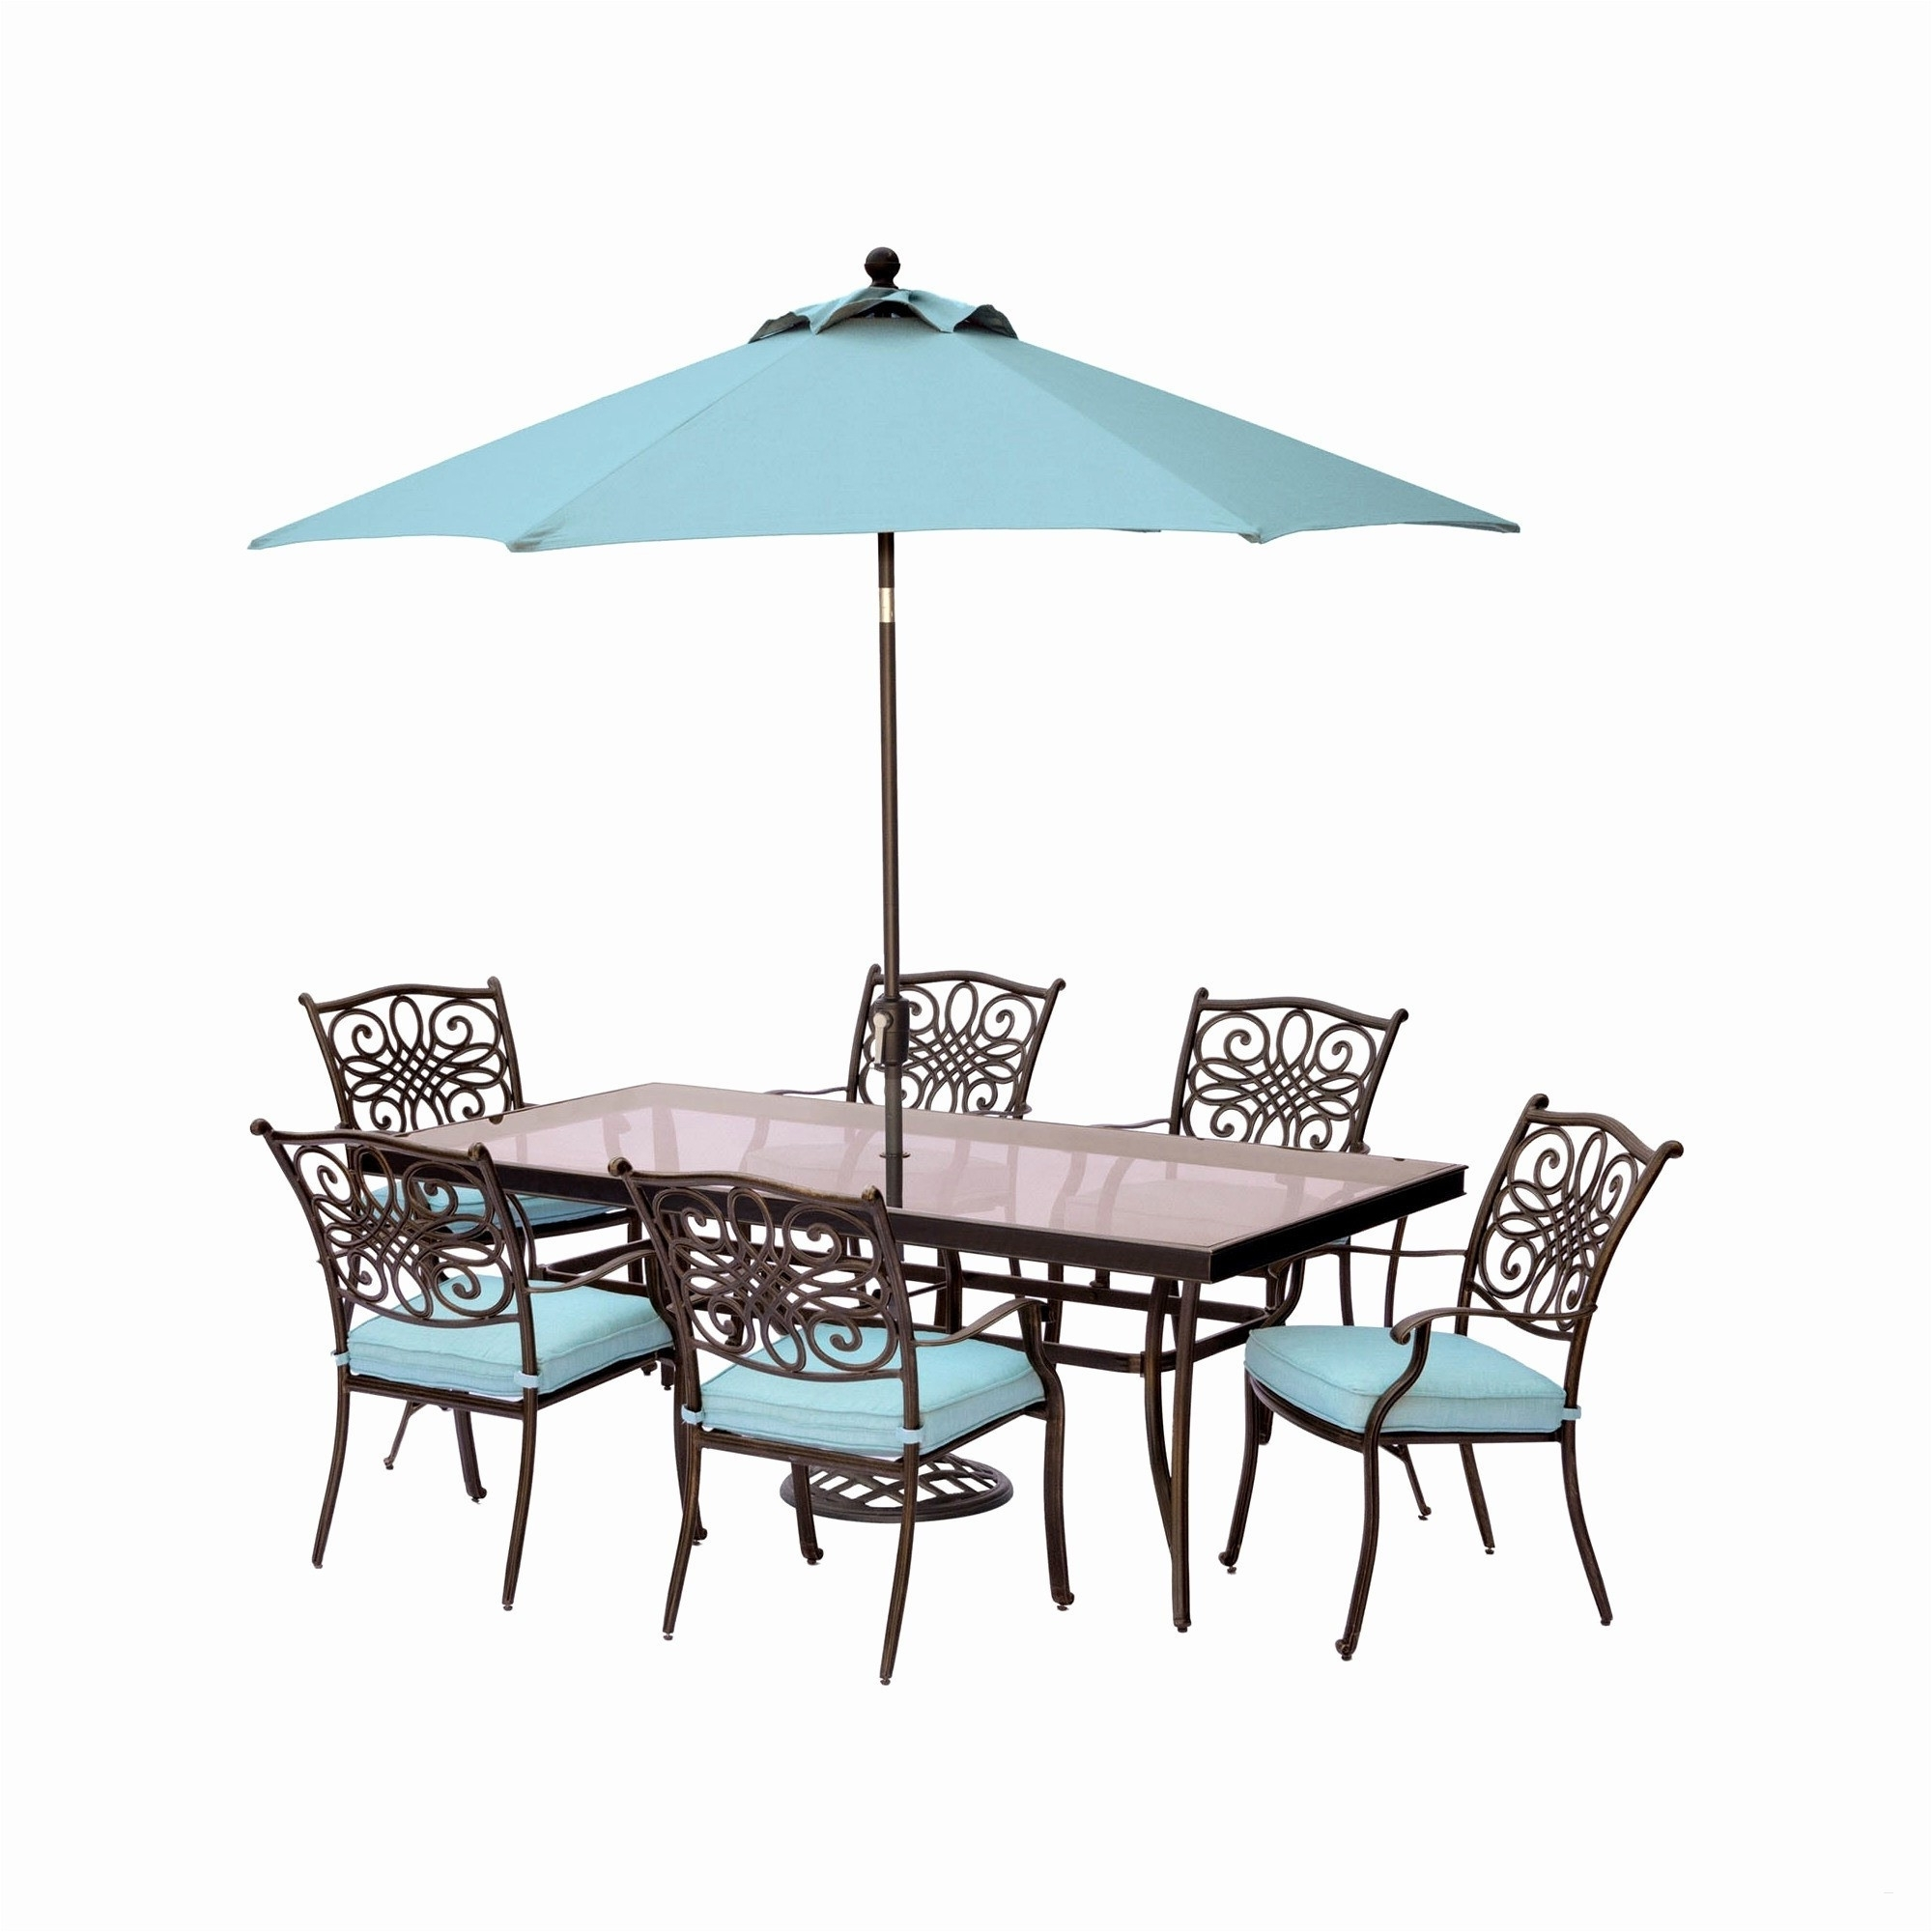 Kmart Patio Umbrellas Luxurious 40 Lovely Wicker Chair Seat Cushions With Regard To 2019 Kmart Patio Umbrellas (View 15 of 20)